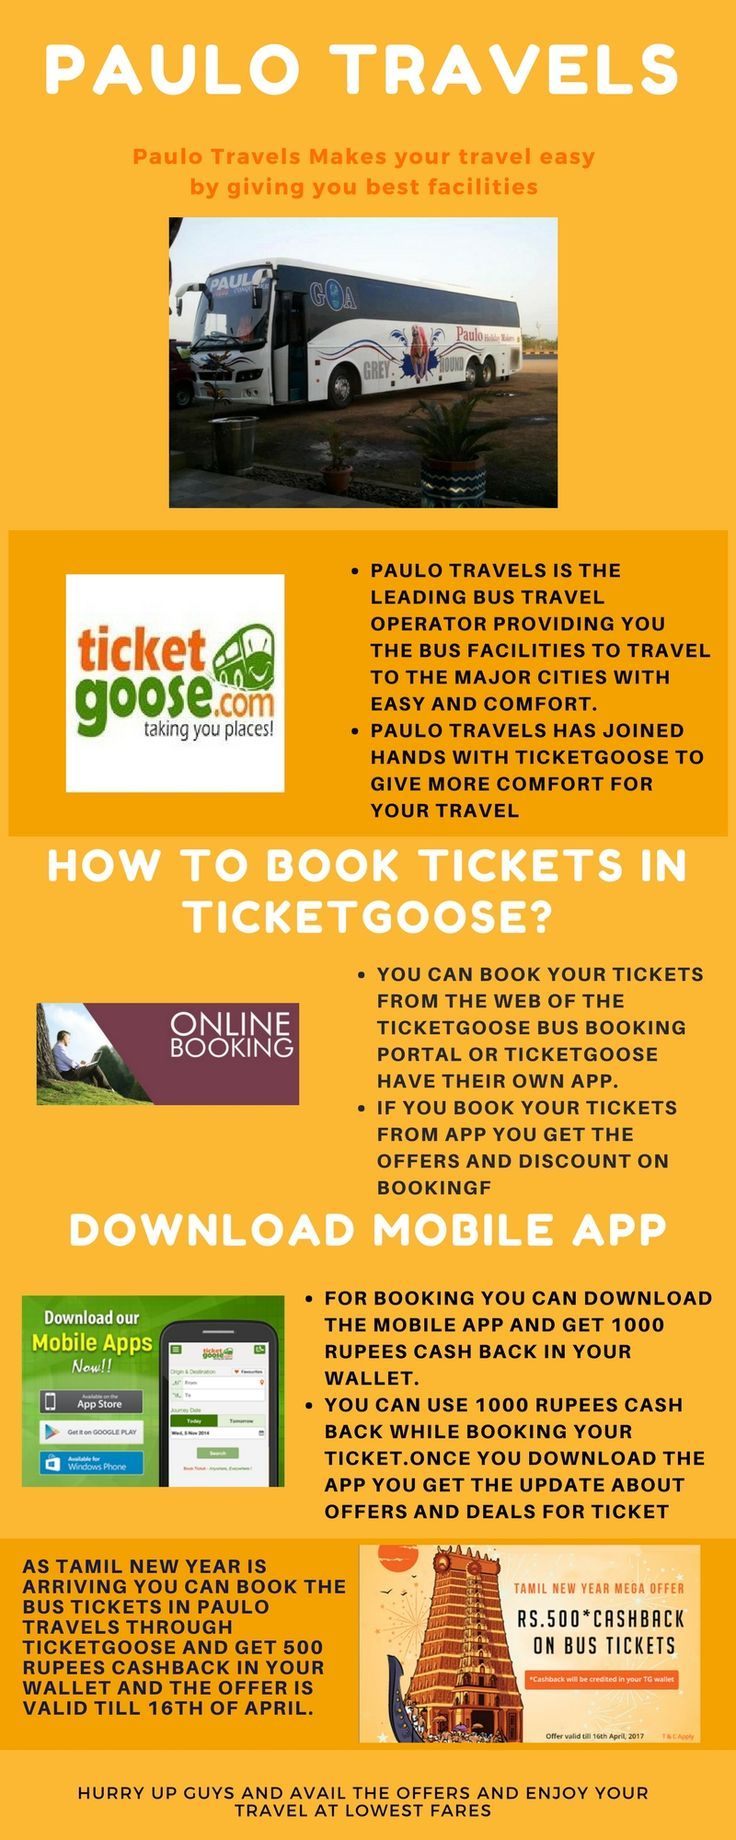 Paulo Travels provides the bus ticket booking to the major cities, Book the tickets for Paulo travels at ticket goose at the best fare with best service   http://www.ticketgoose.com/paulo-travels